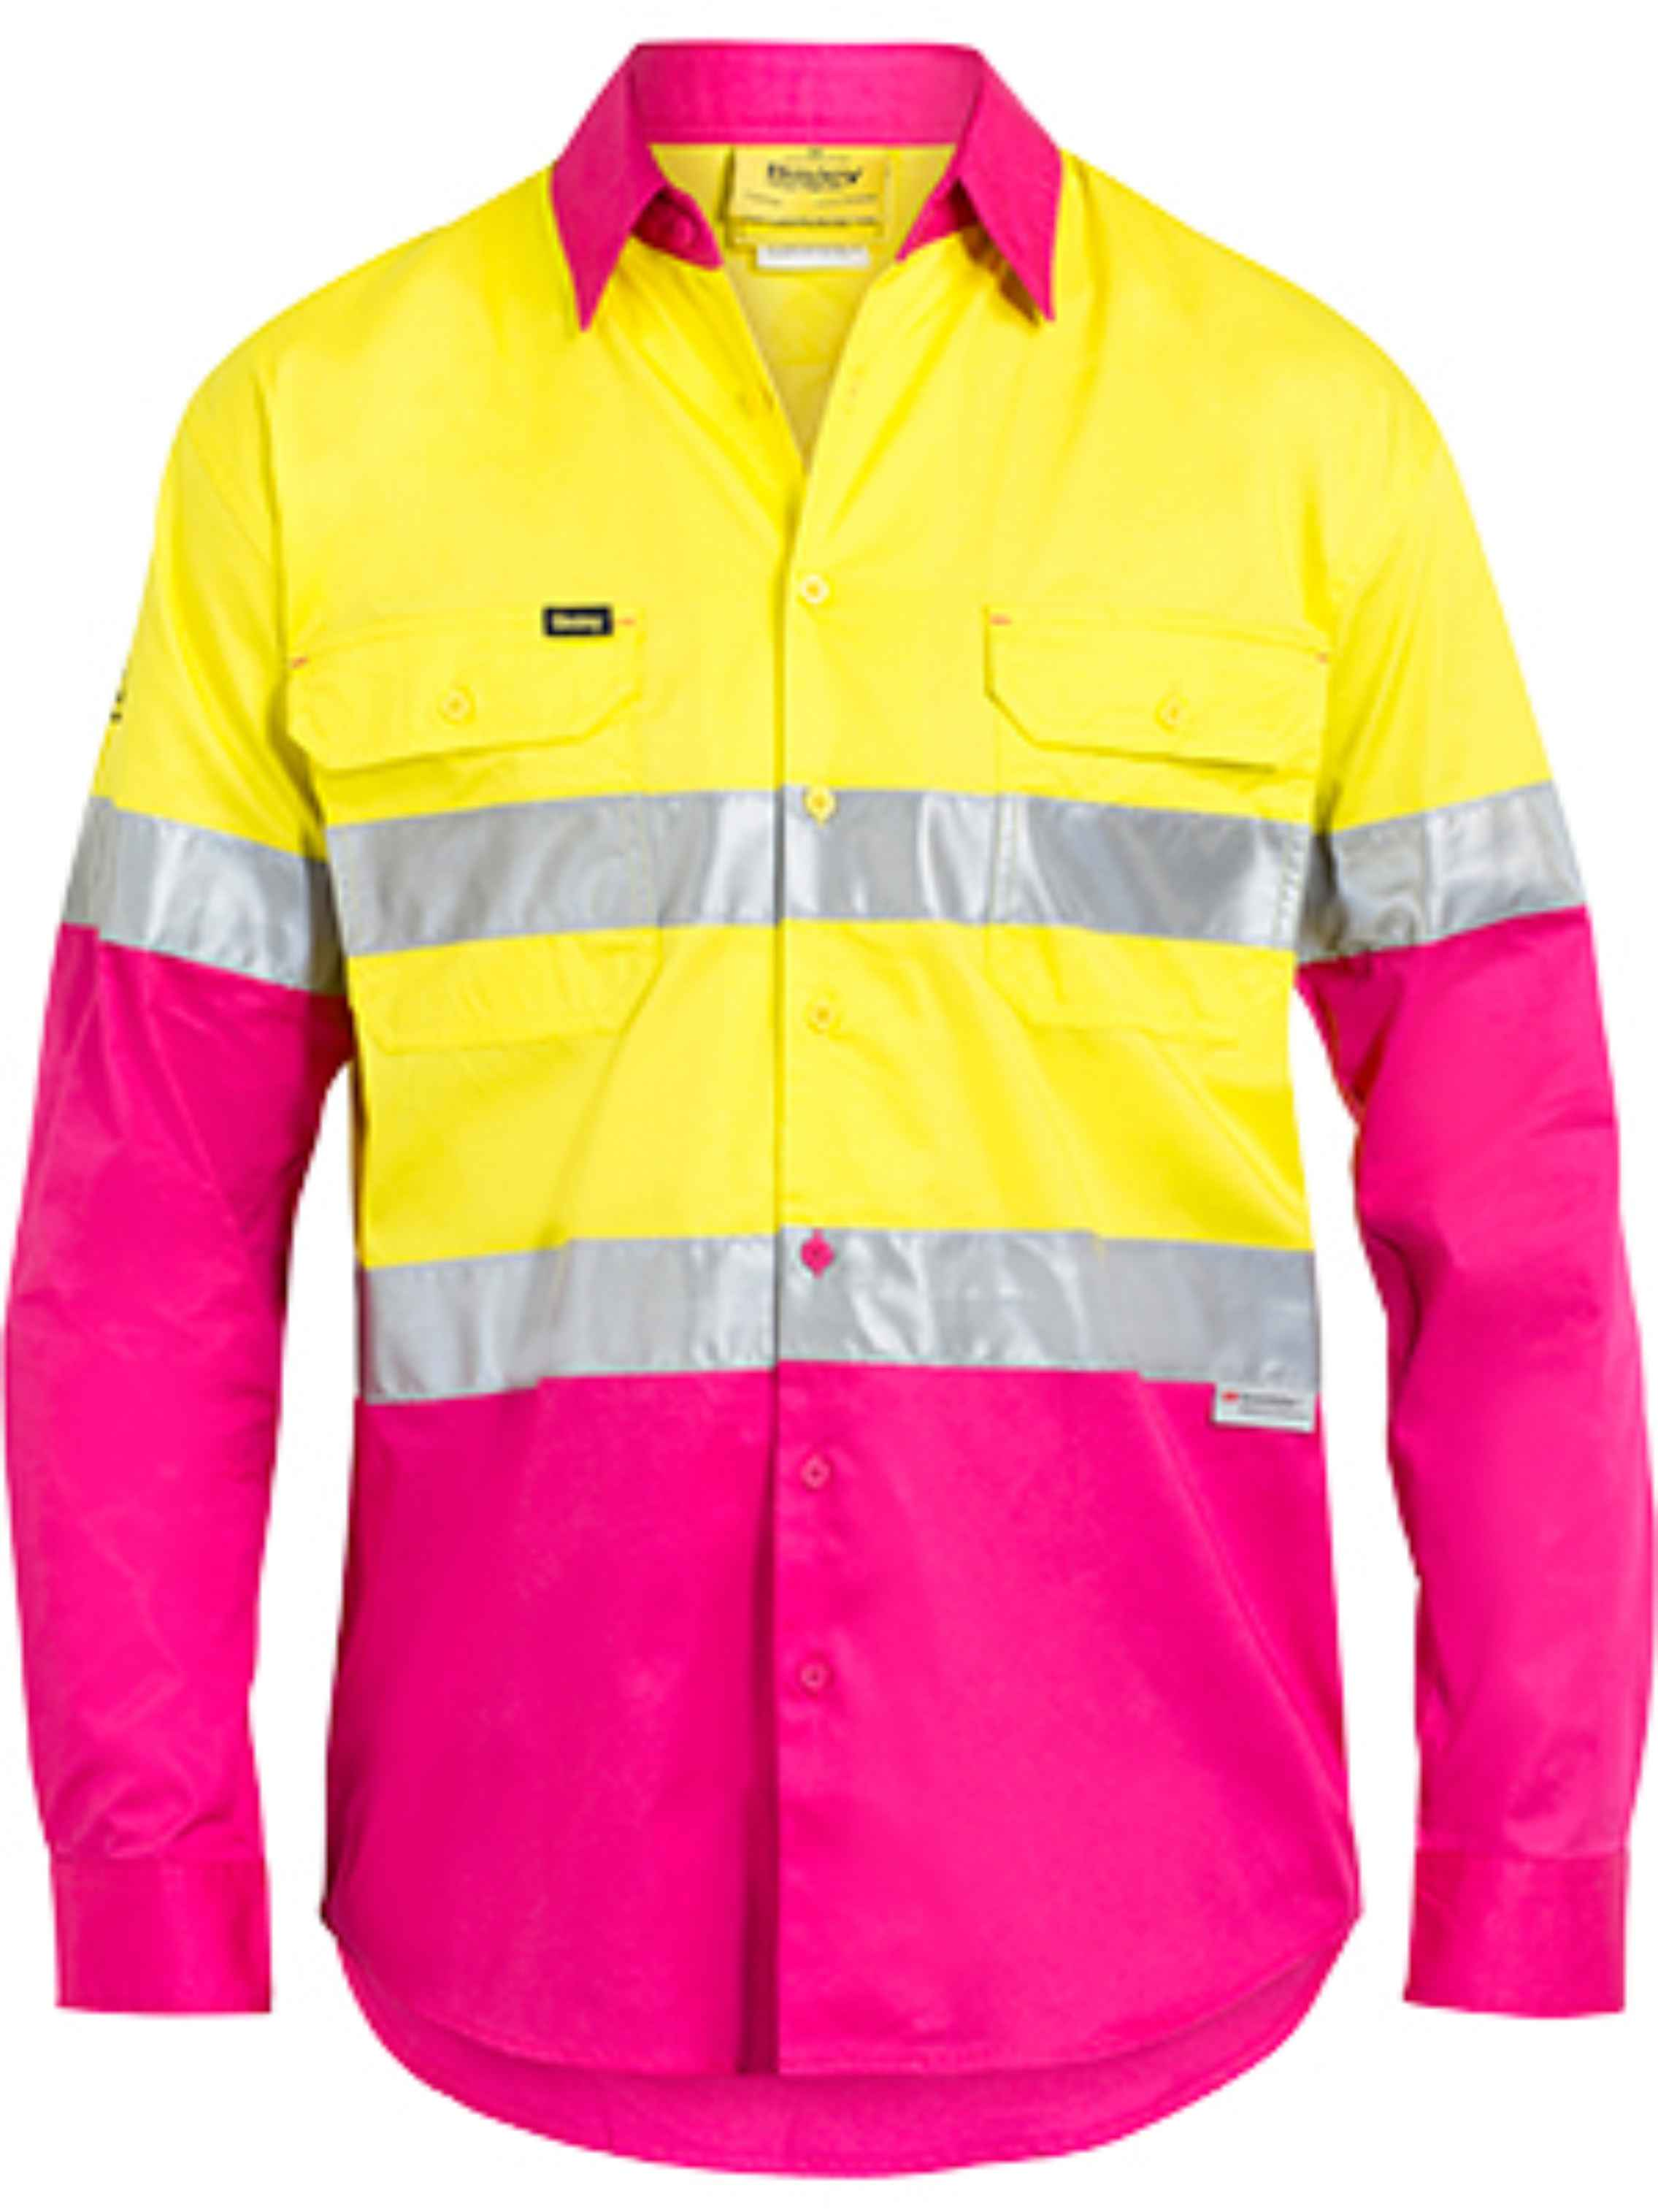 Bisley bs6696t hi vis 155gsm drill shirt 3m reflective for Hi vis shirts with reflective tape